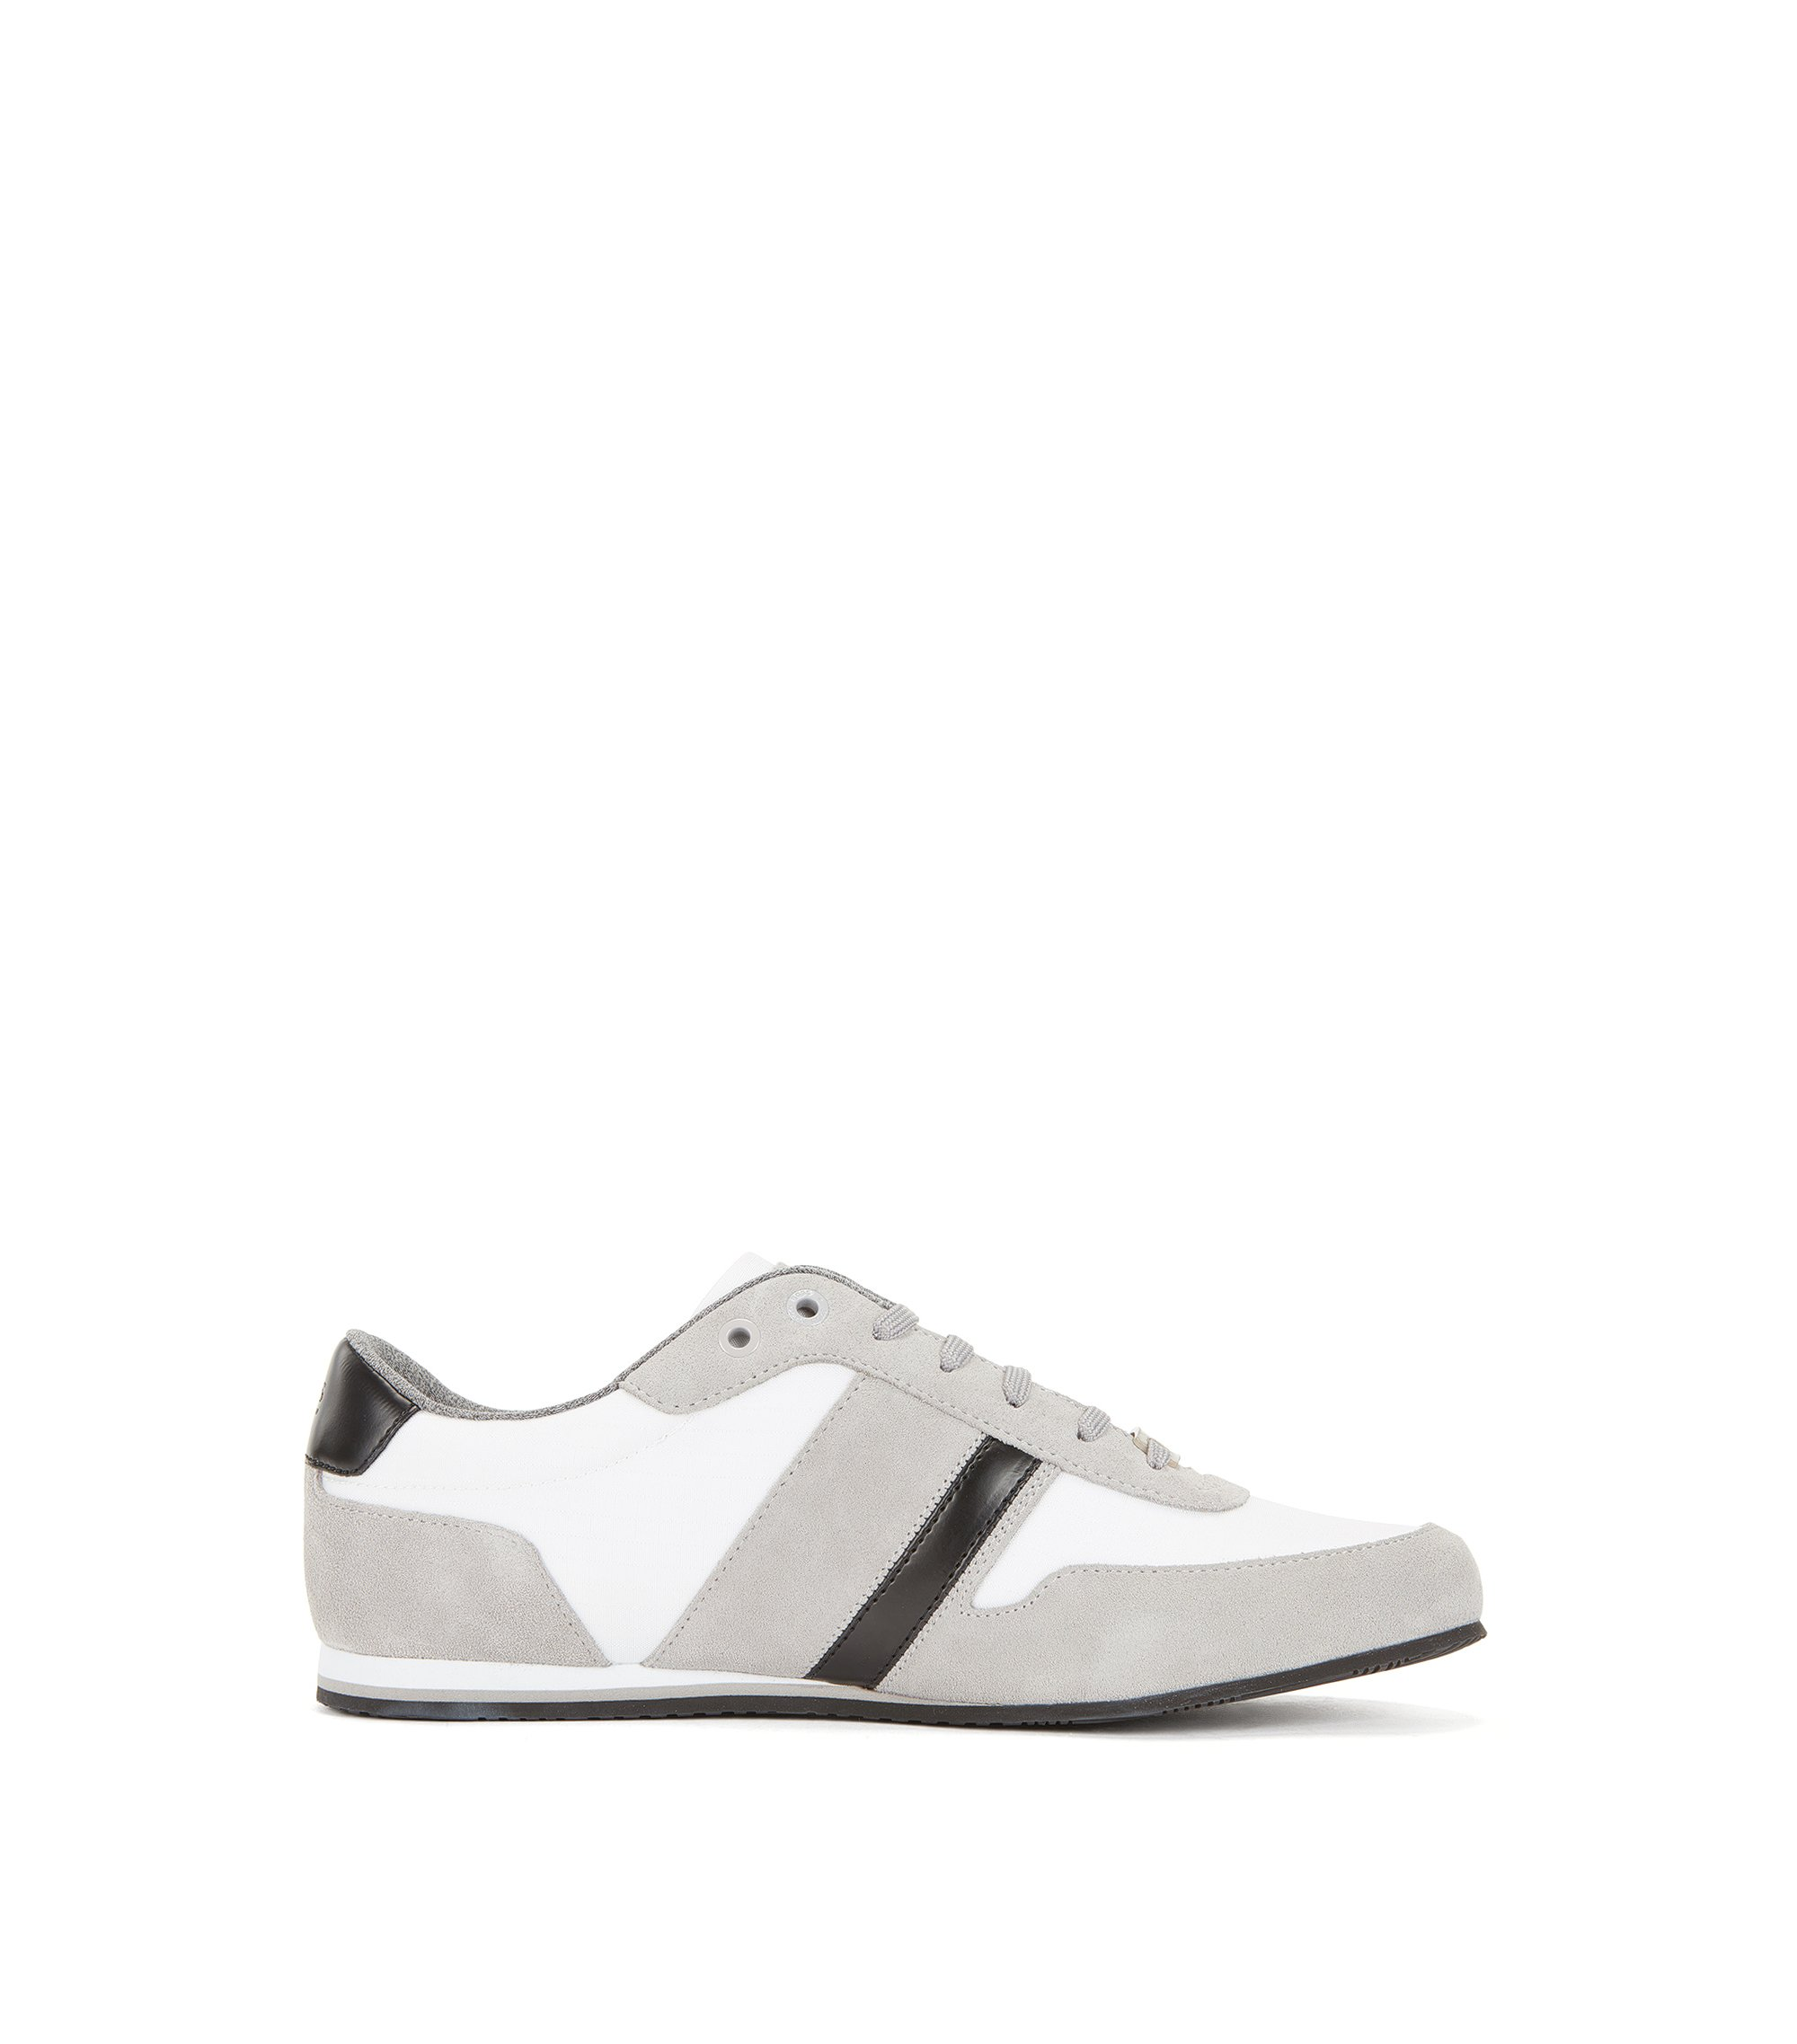 Sneakers low-top con tomaia in pelle scamosciata e tessuto, Naturale